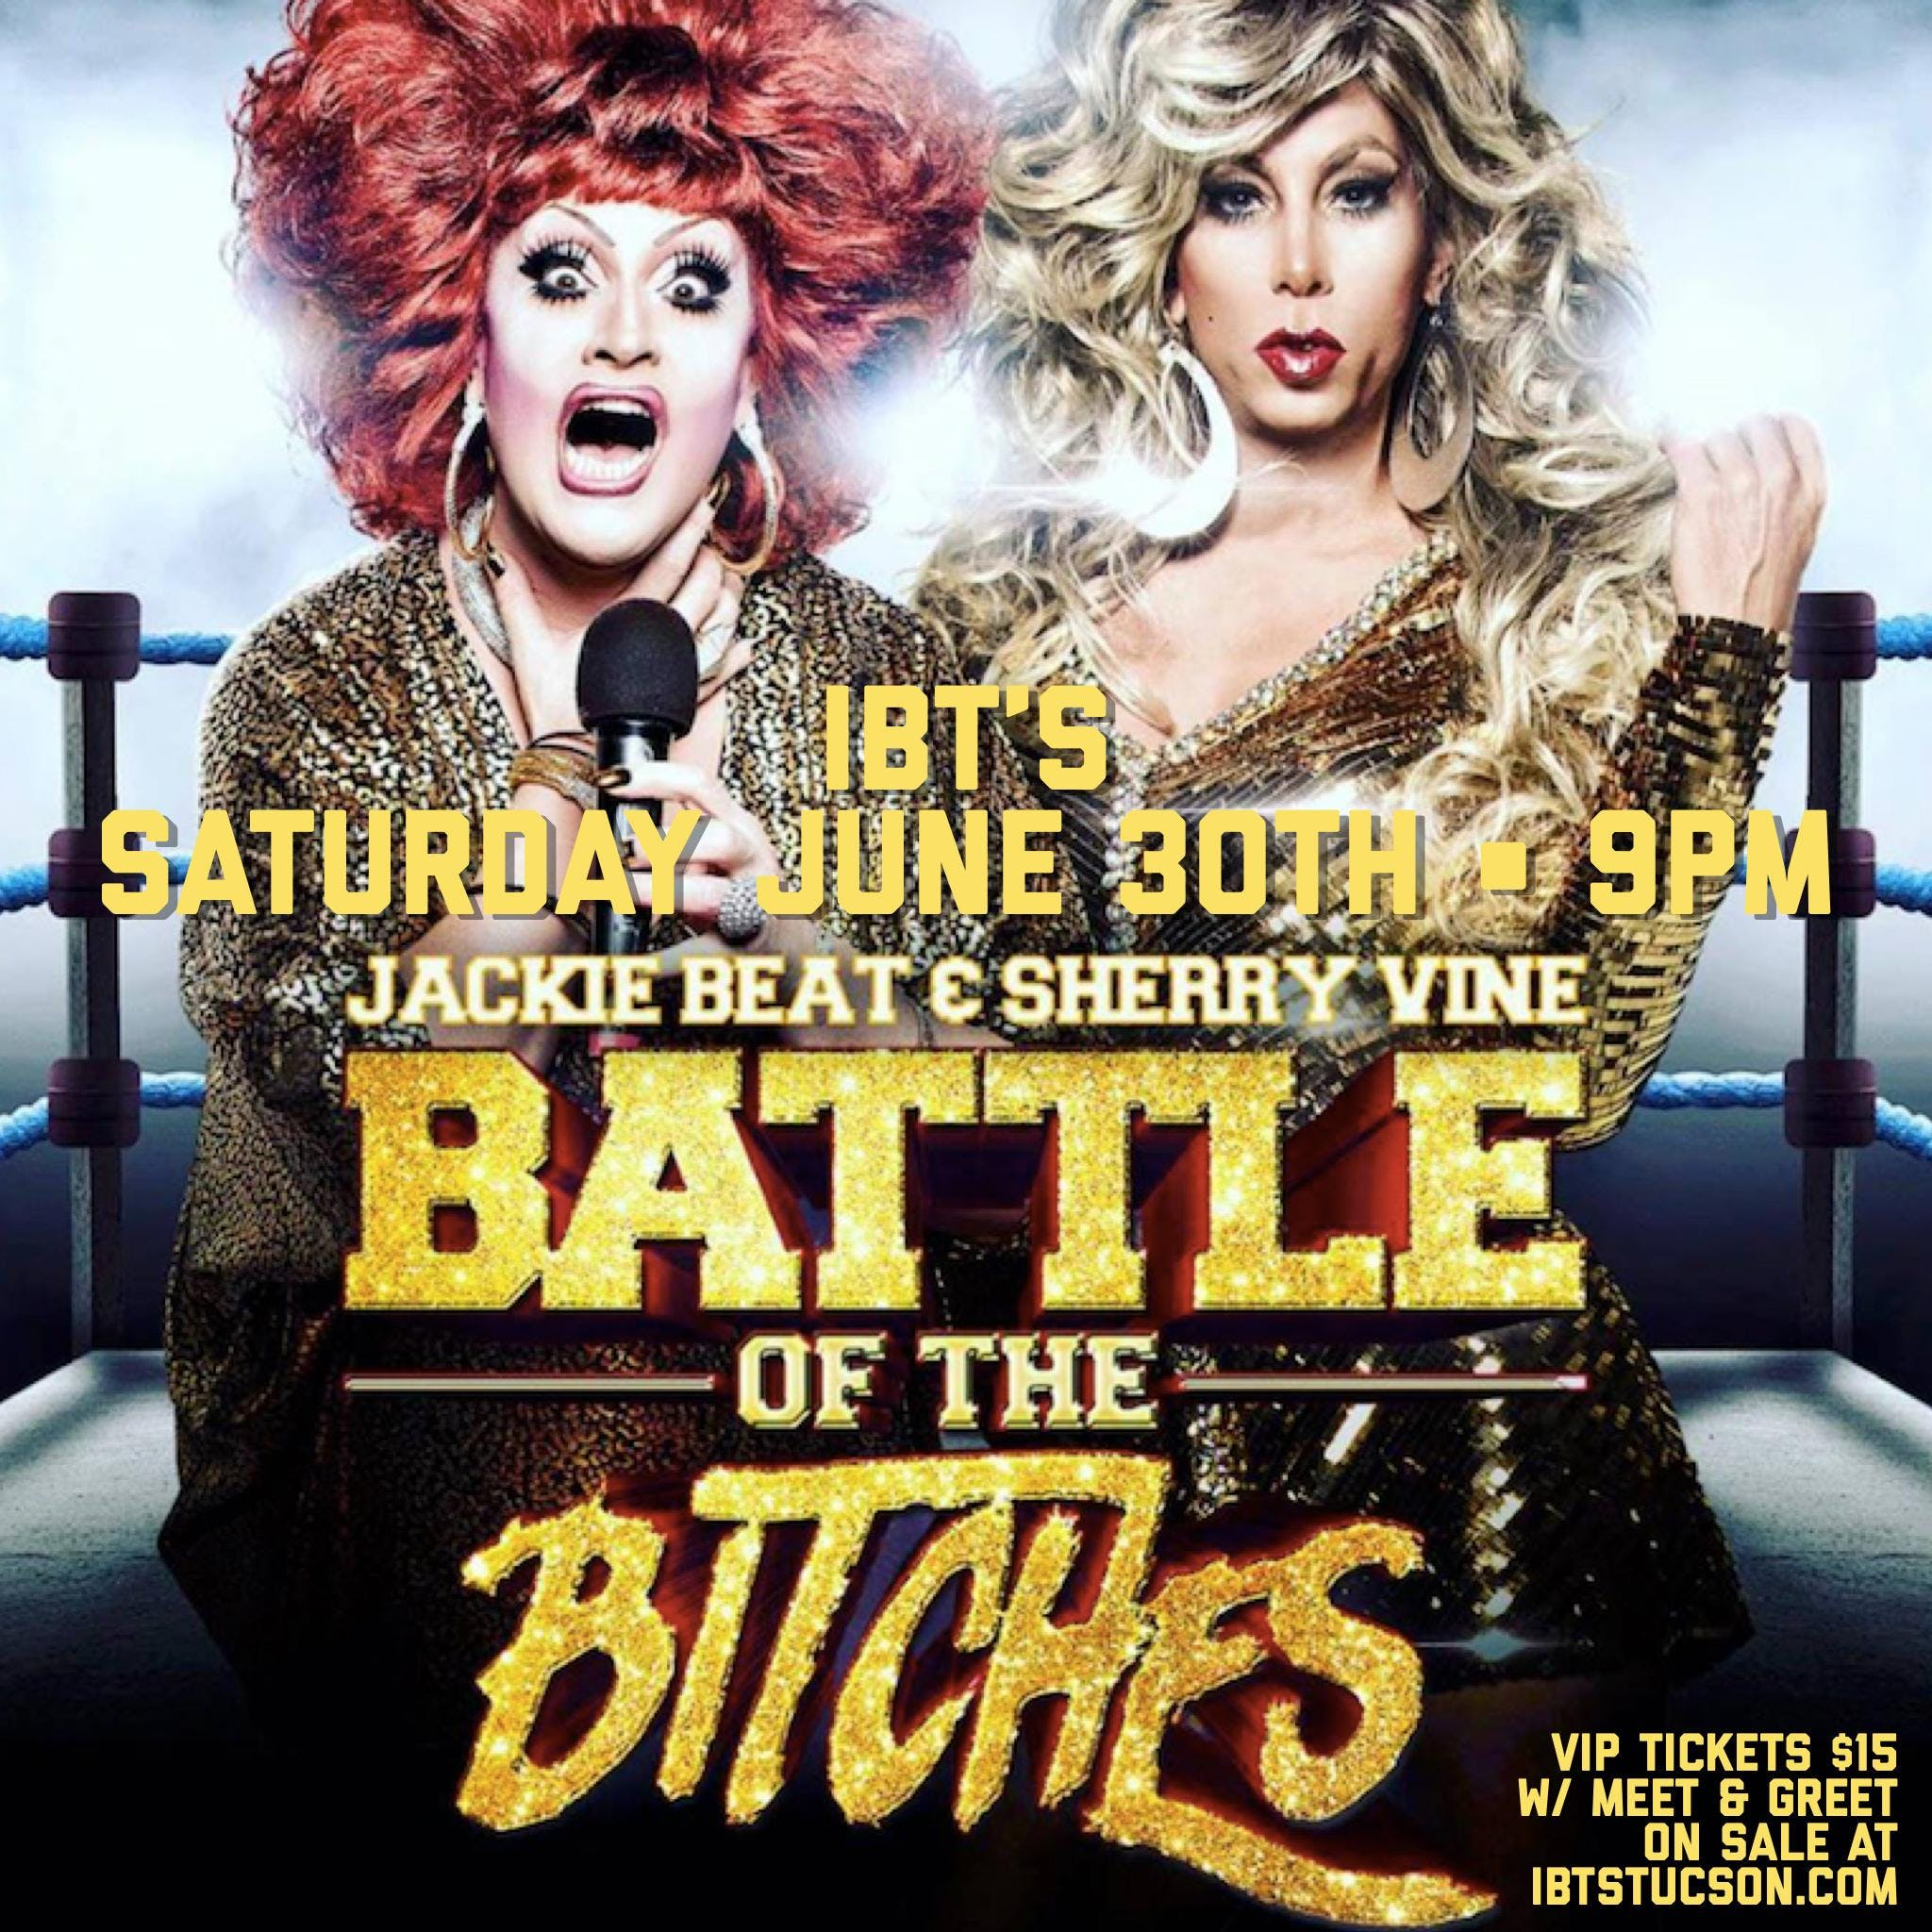 Jackie beat sherry vine battle of the bitches 30 jun 2018 jackie beat sherry vine battle of the bitches m4hsunfo